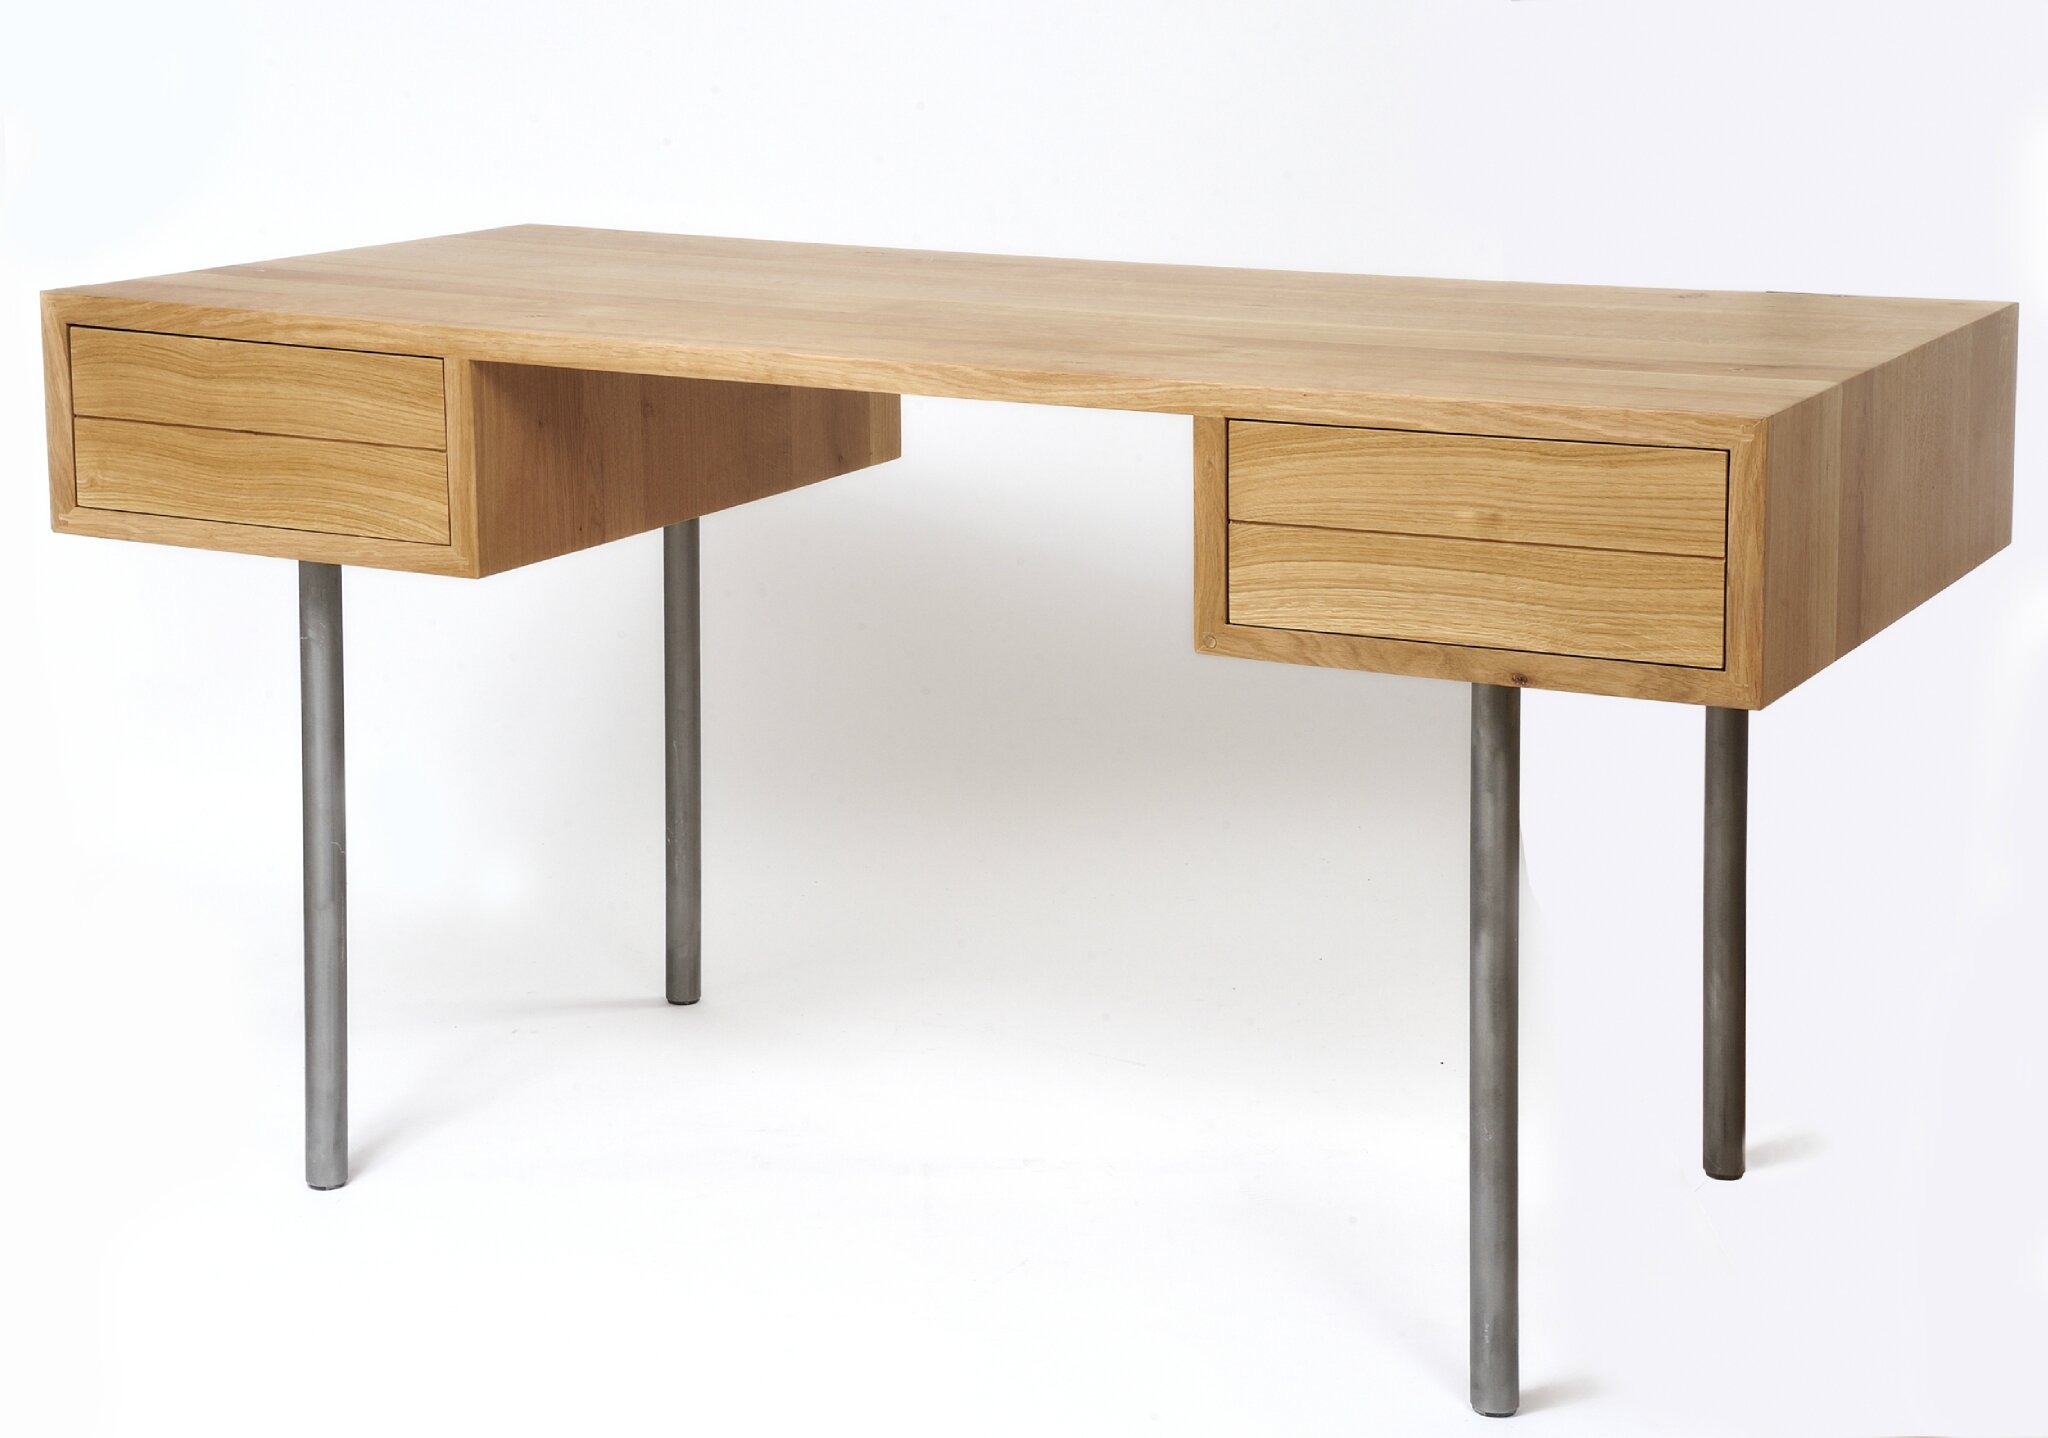 Meubles contemporains de cr ateur for Petit bureau en bois